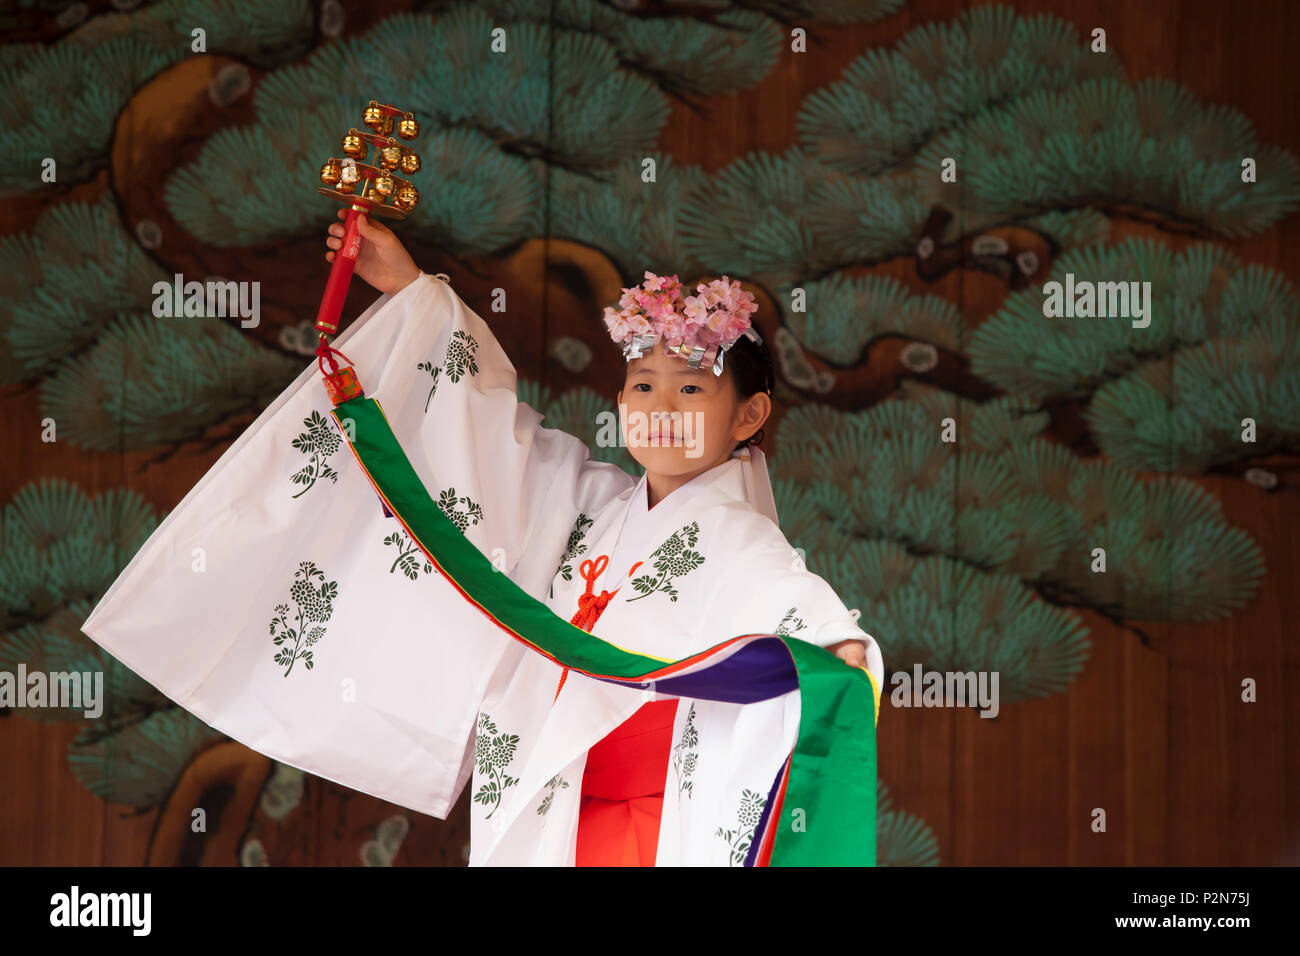 Girl dancing in traditional costume during Sanja Matsuri in Asakusa, Taito-ku, Tokyo, Japan - Stock Image